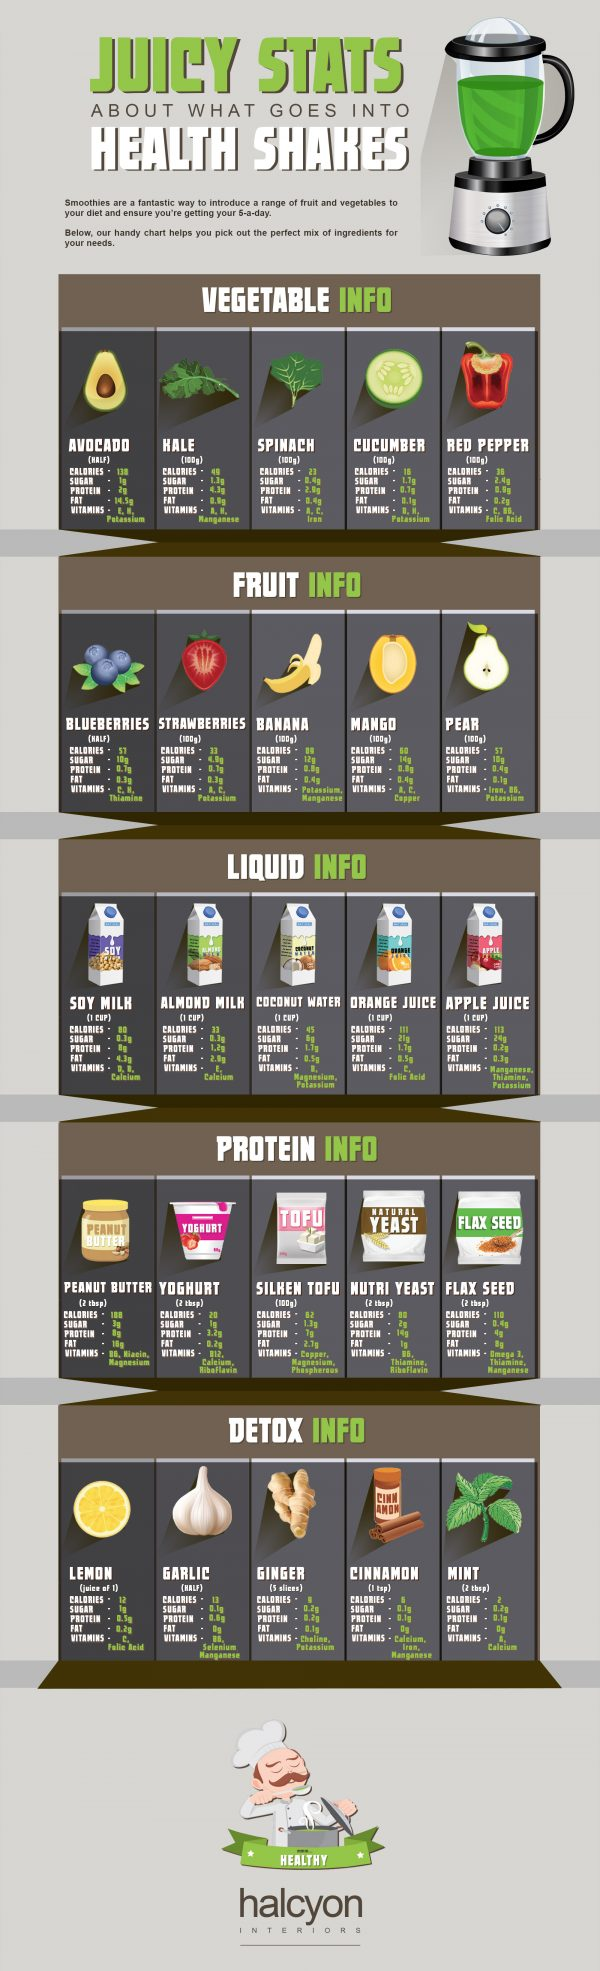 halcyon-interiors-infographic-fruit-veg-smoothie